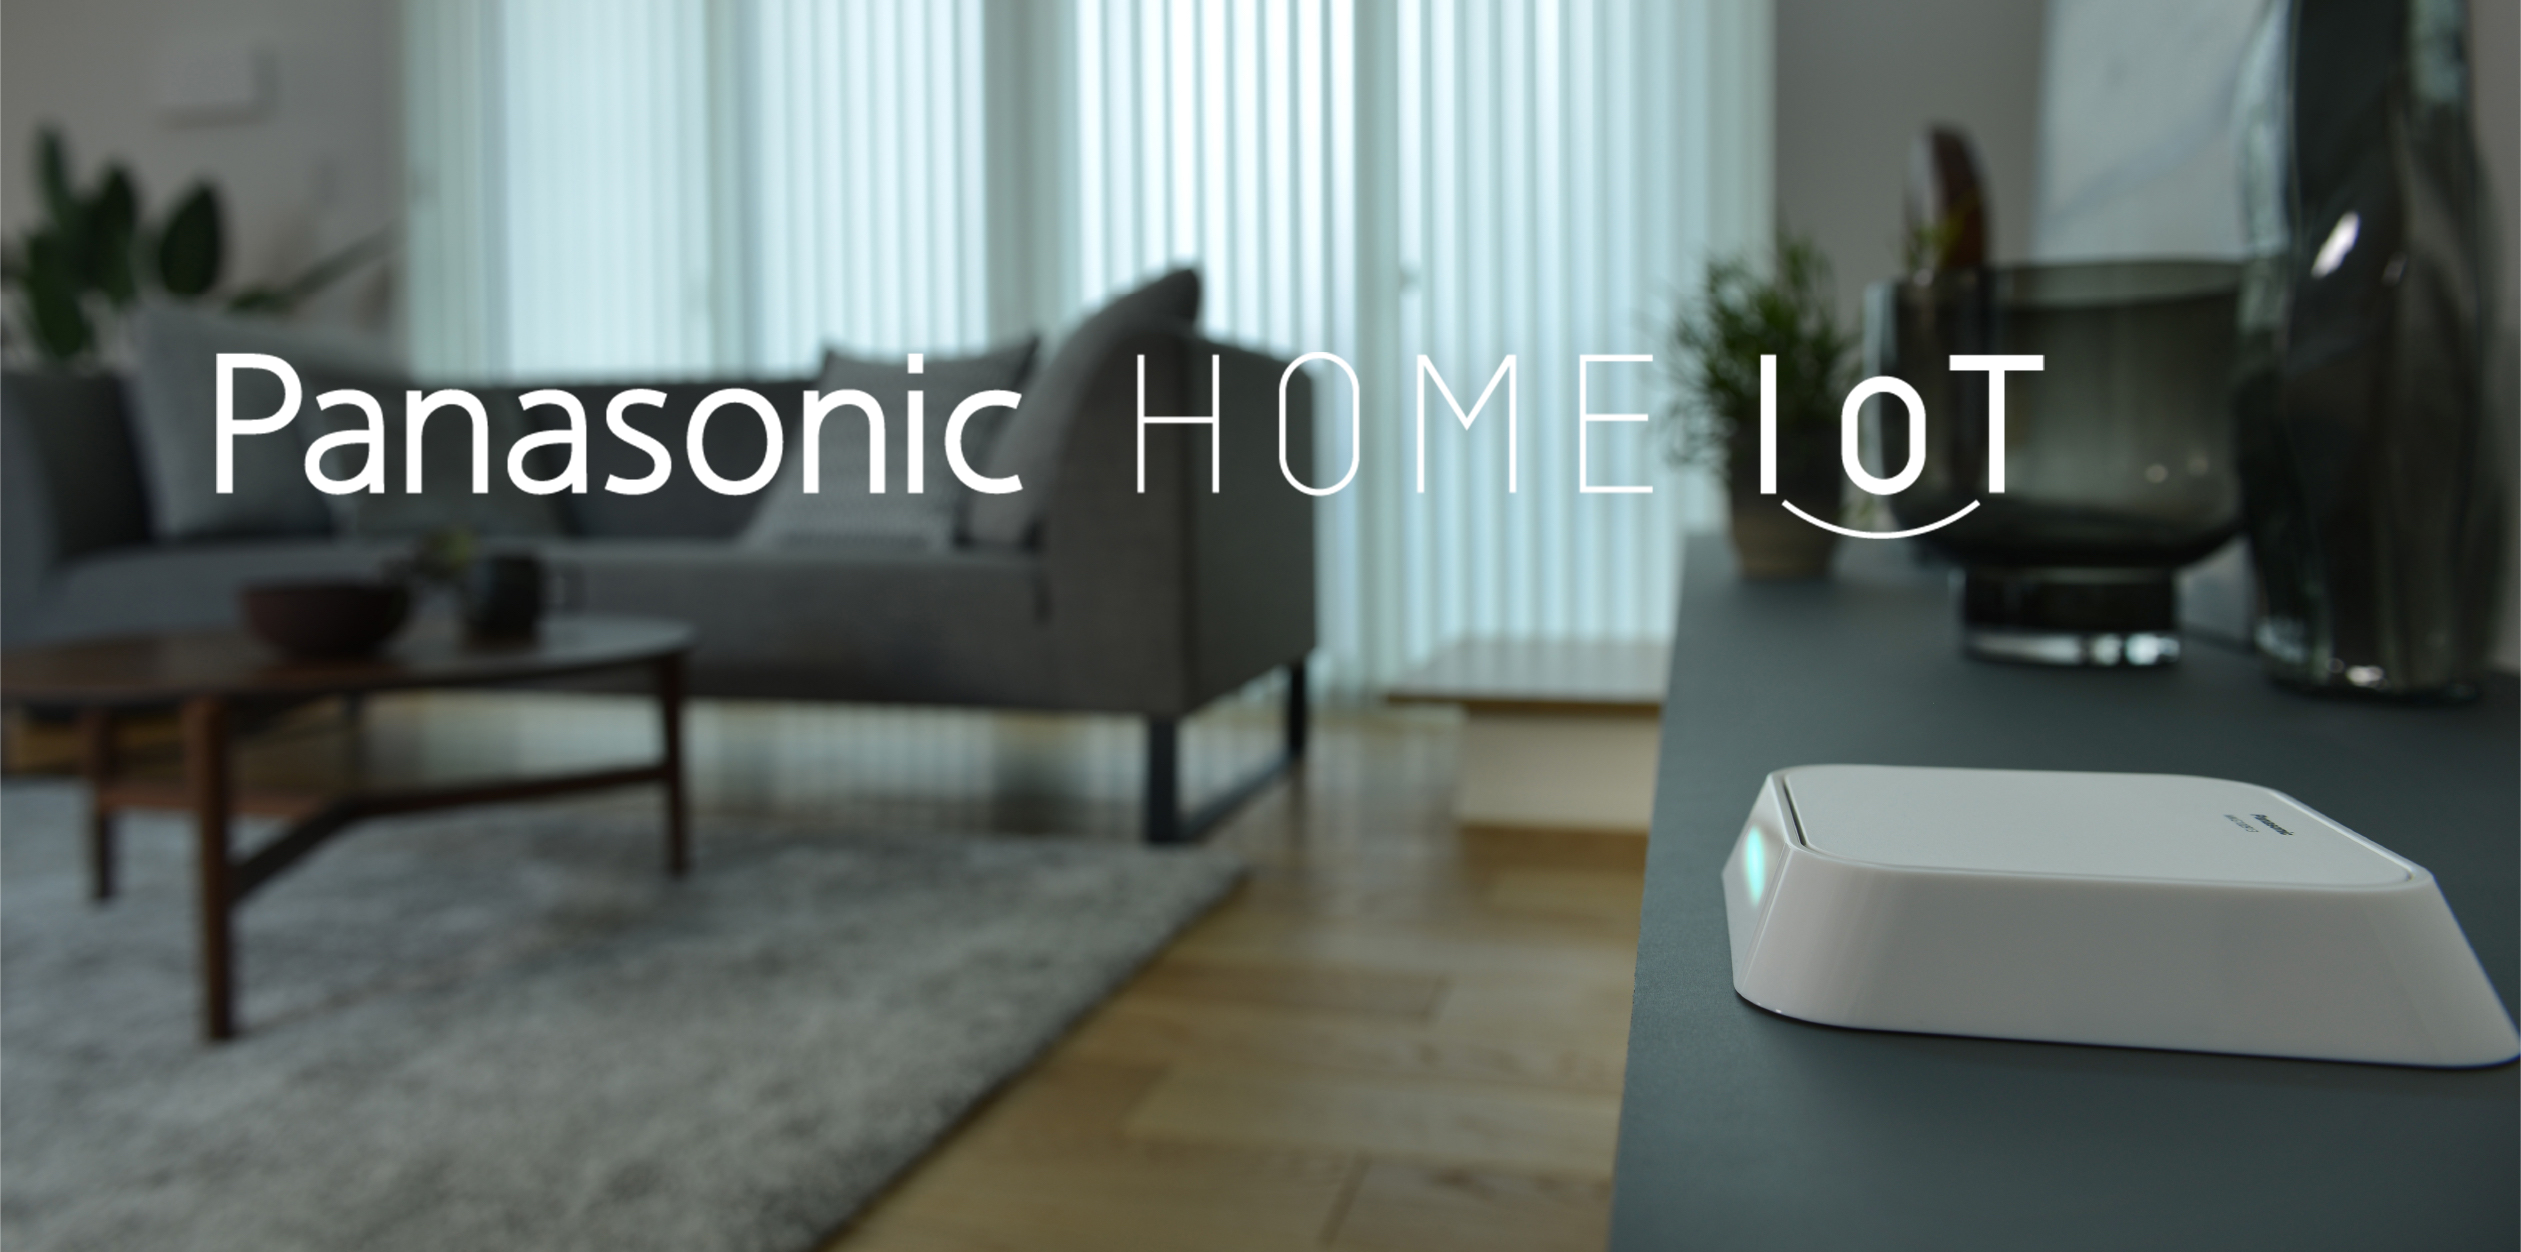 home-iot interior 02 logo